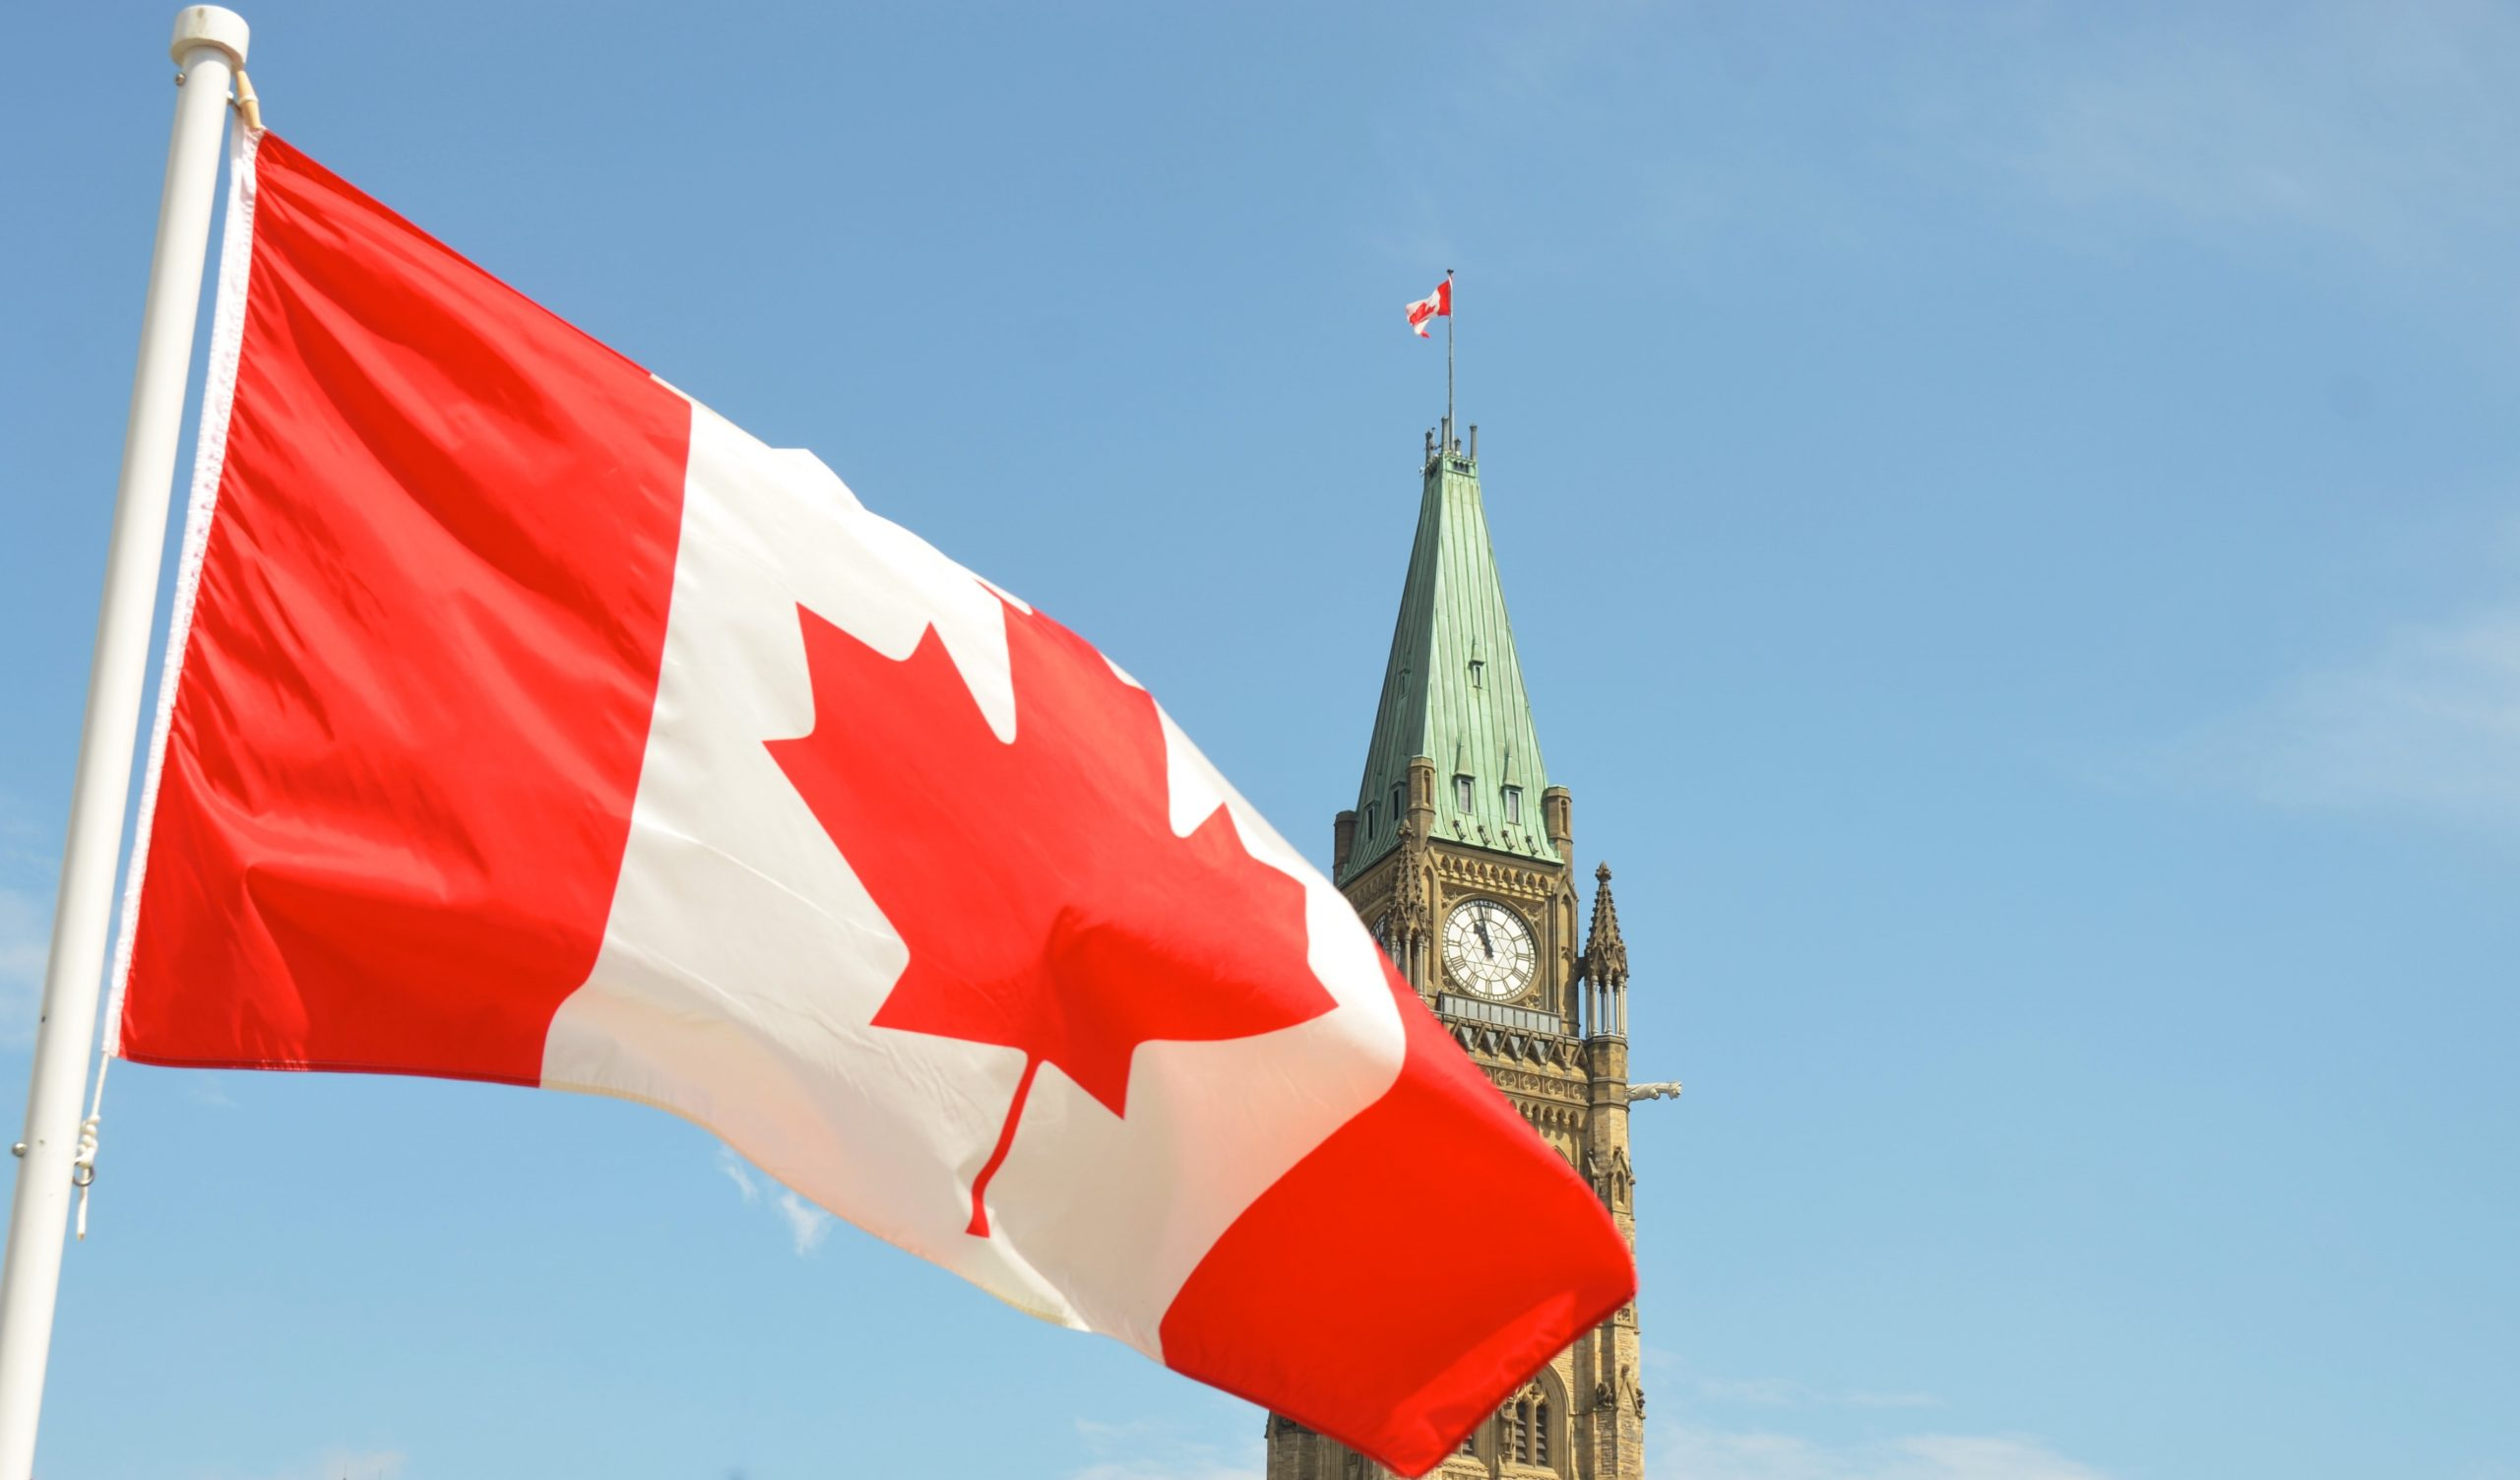 What All Do You Need to Apply for MS in Canada?